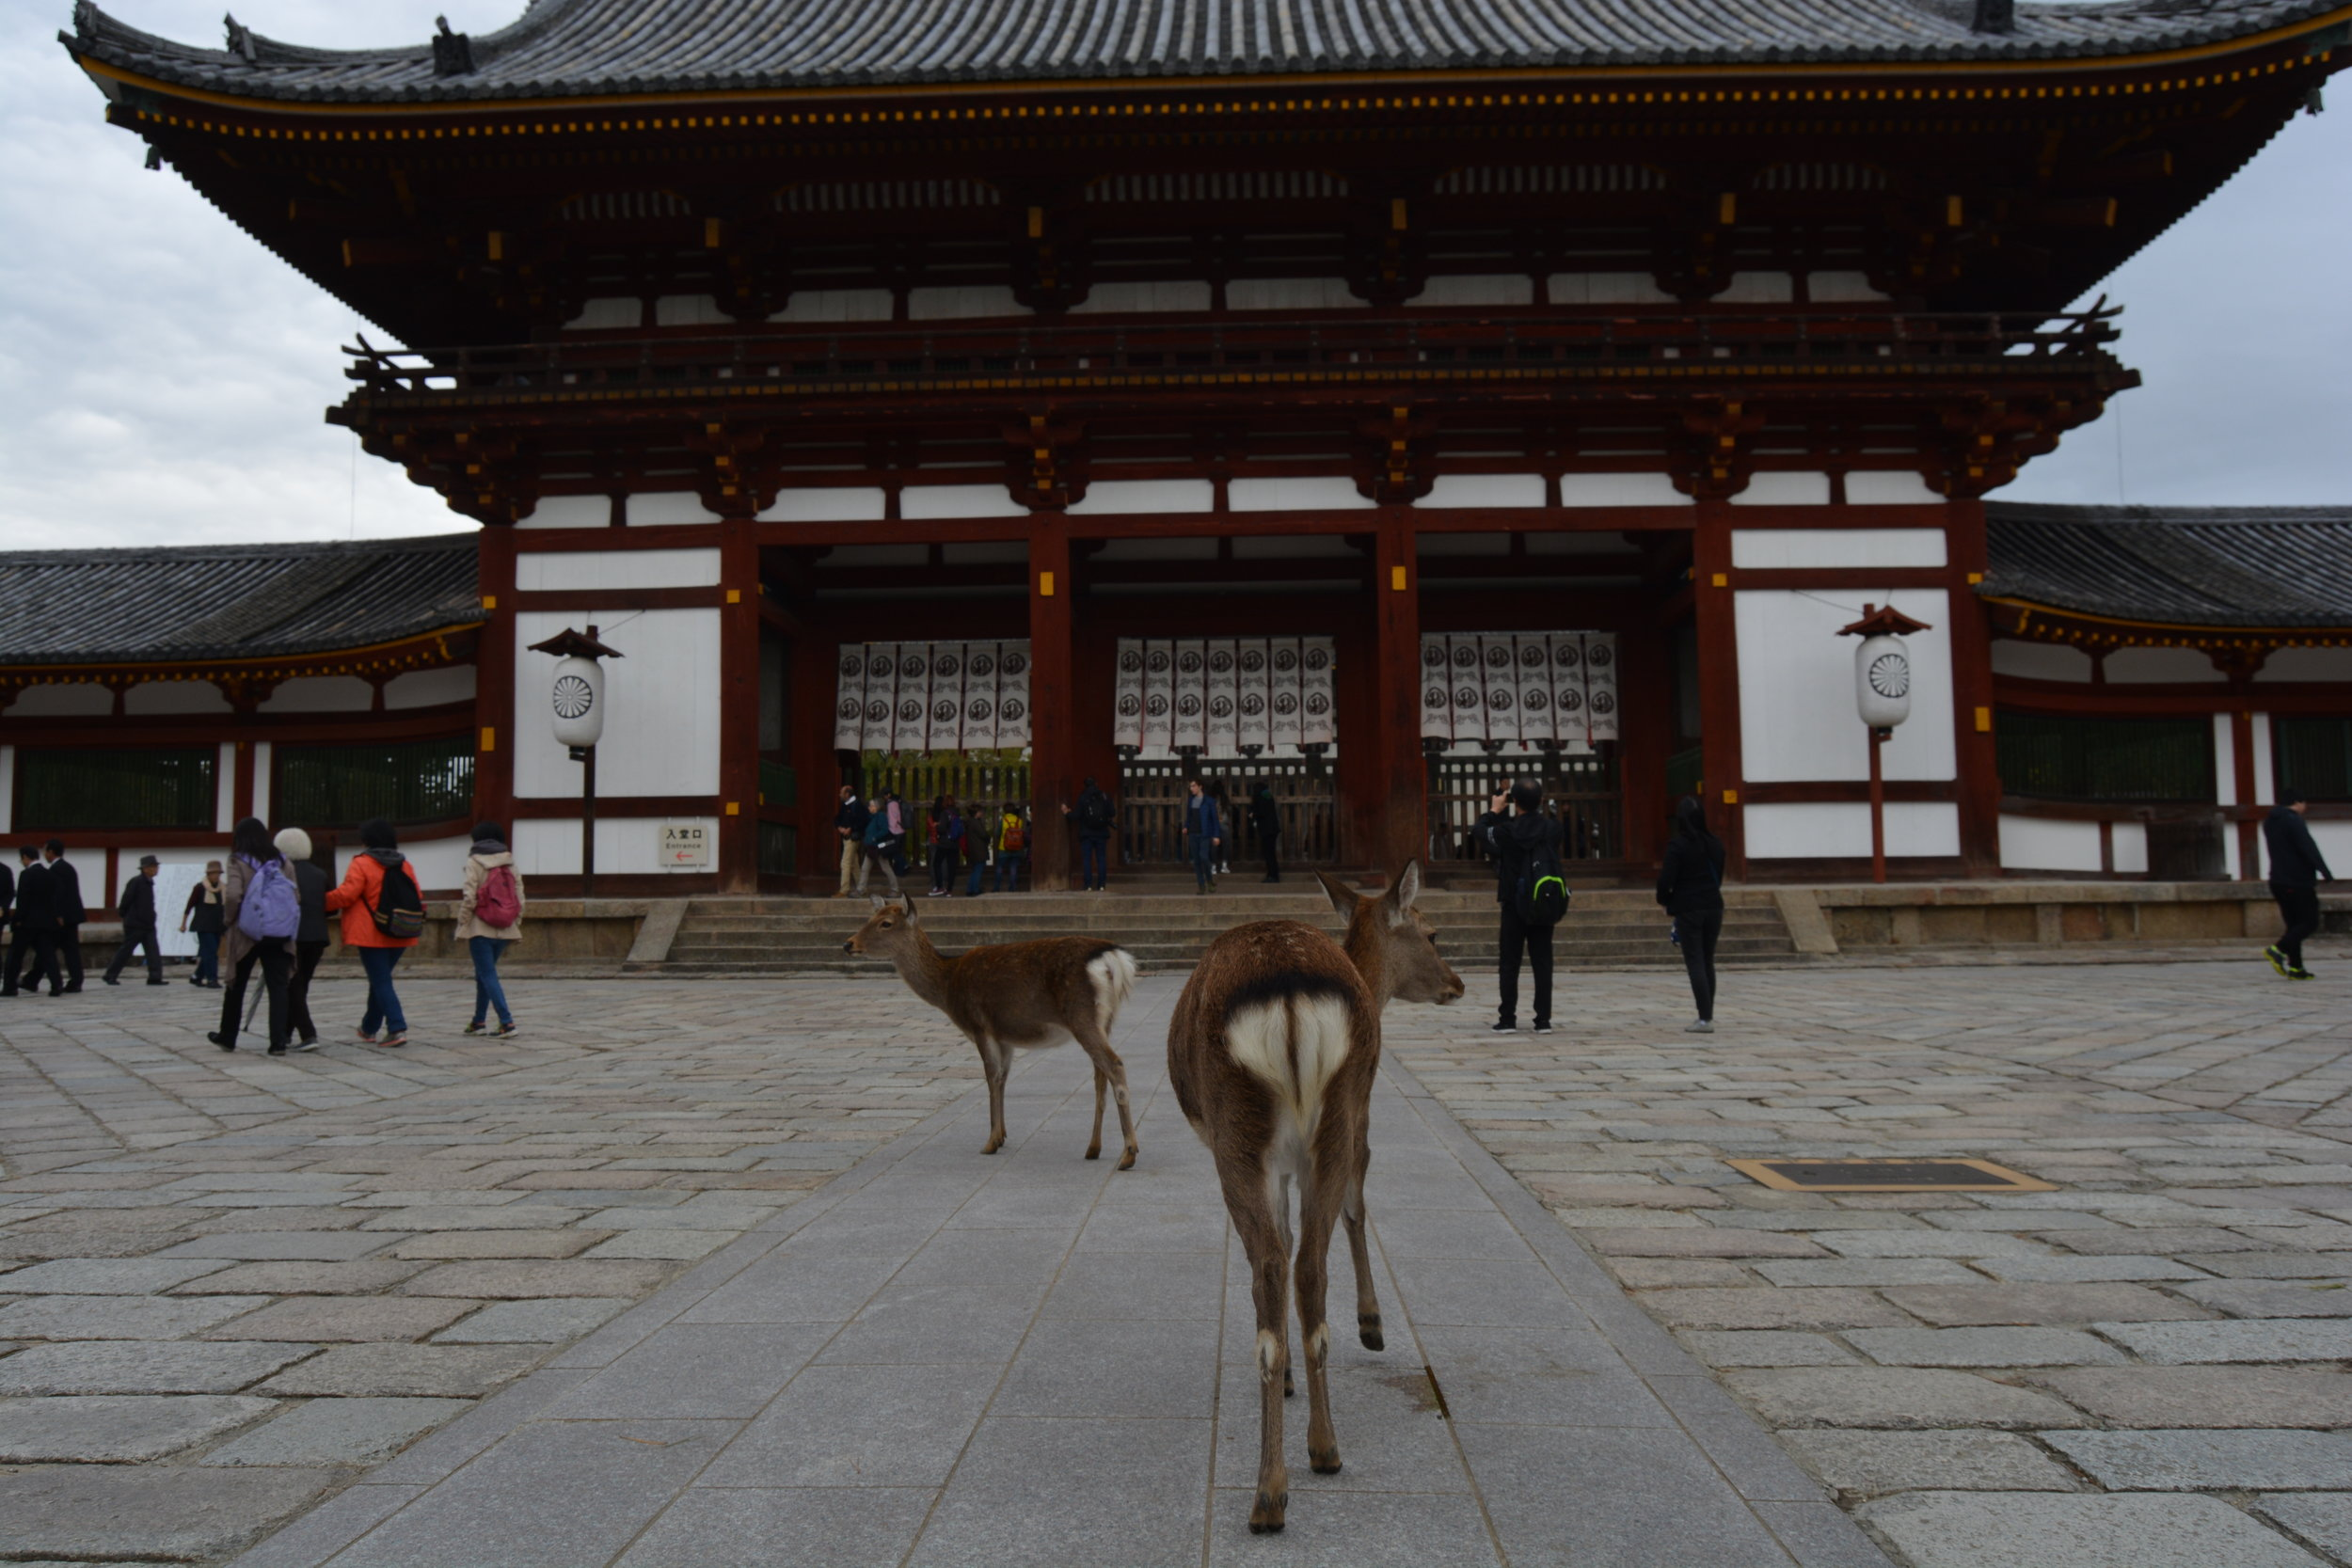 """At Nara, a town just an hour's train ride from Kyoto, hundreds of """"tame""""deer walk around freely. The deer are considered sacred based on local legend that a deity named Takemikazuchi arrived in the old capital on a white deer to act as its protector. They definitely act as if they are well aware of their status as a tourist attraction and sacred symbol - not-so-timidly approaching people for snacks and literally stopping traffic!"""